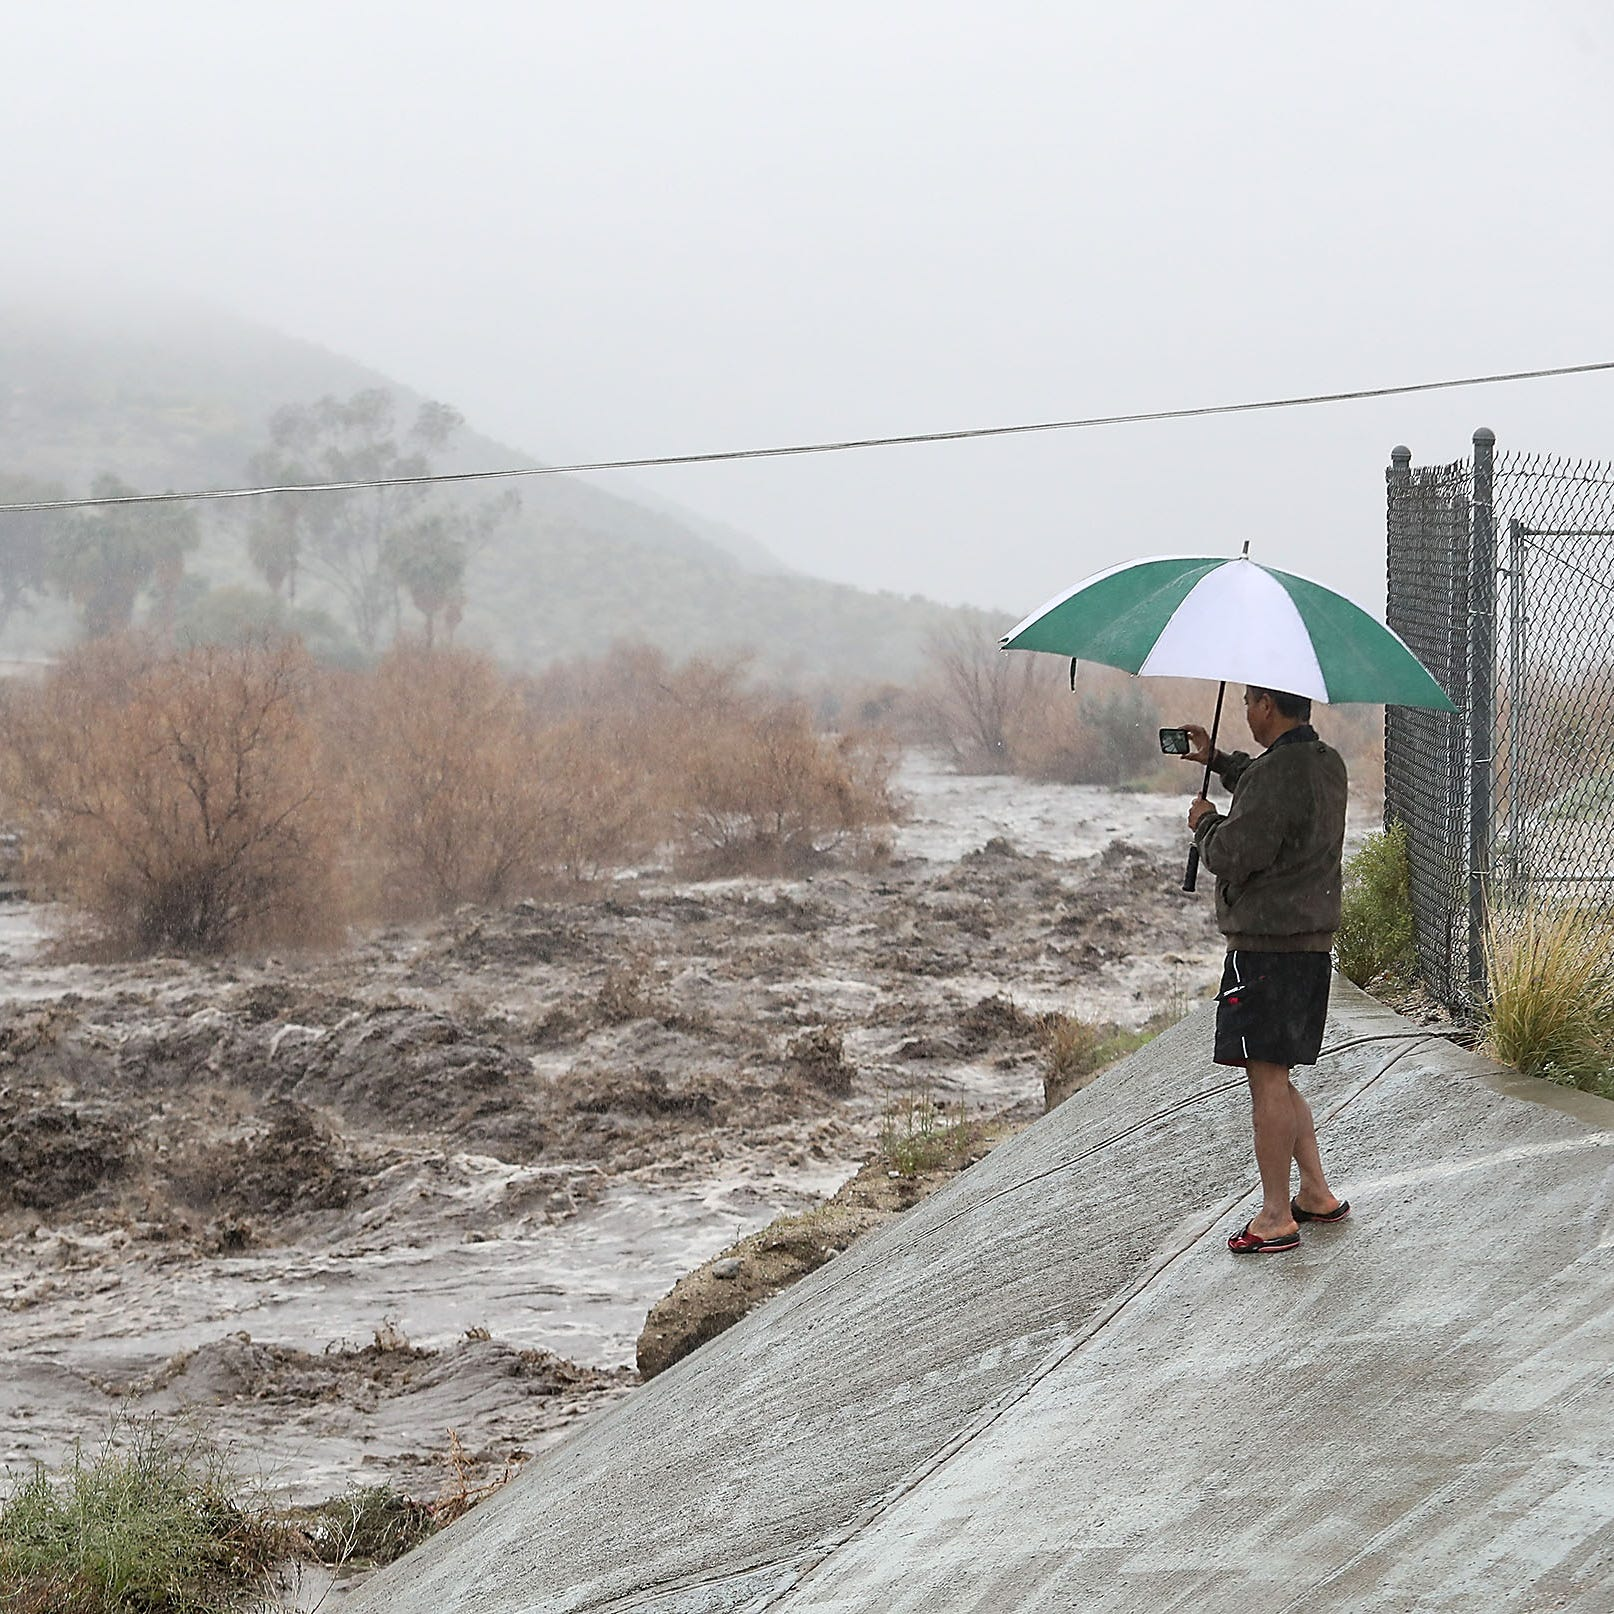 Historic rainfall hits the Palm Springs area. Where does all the water go?